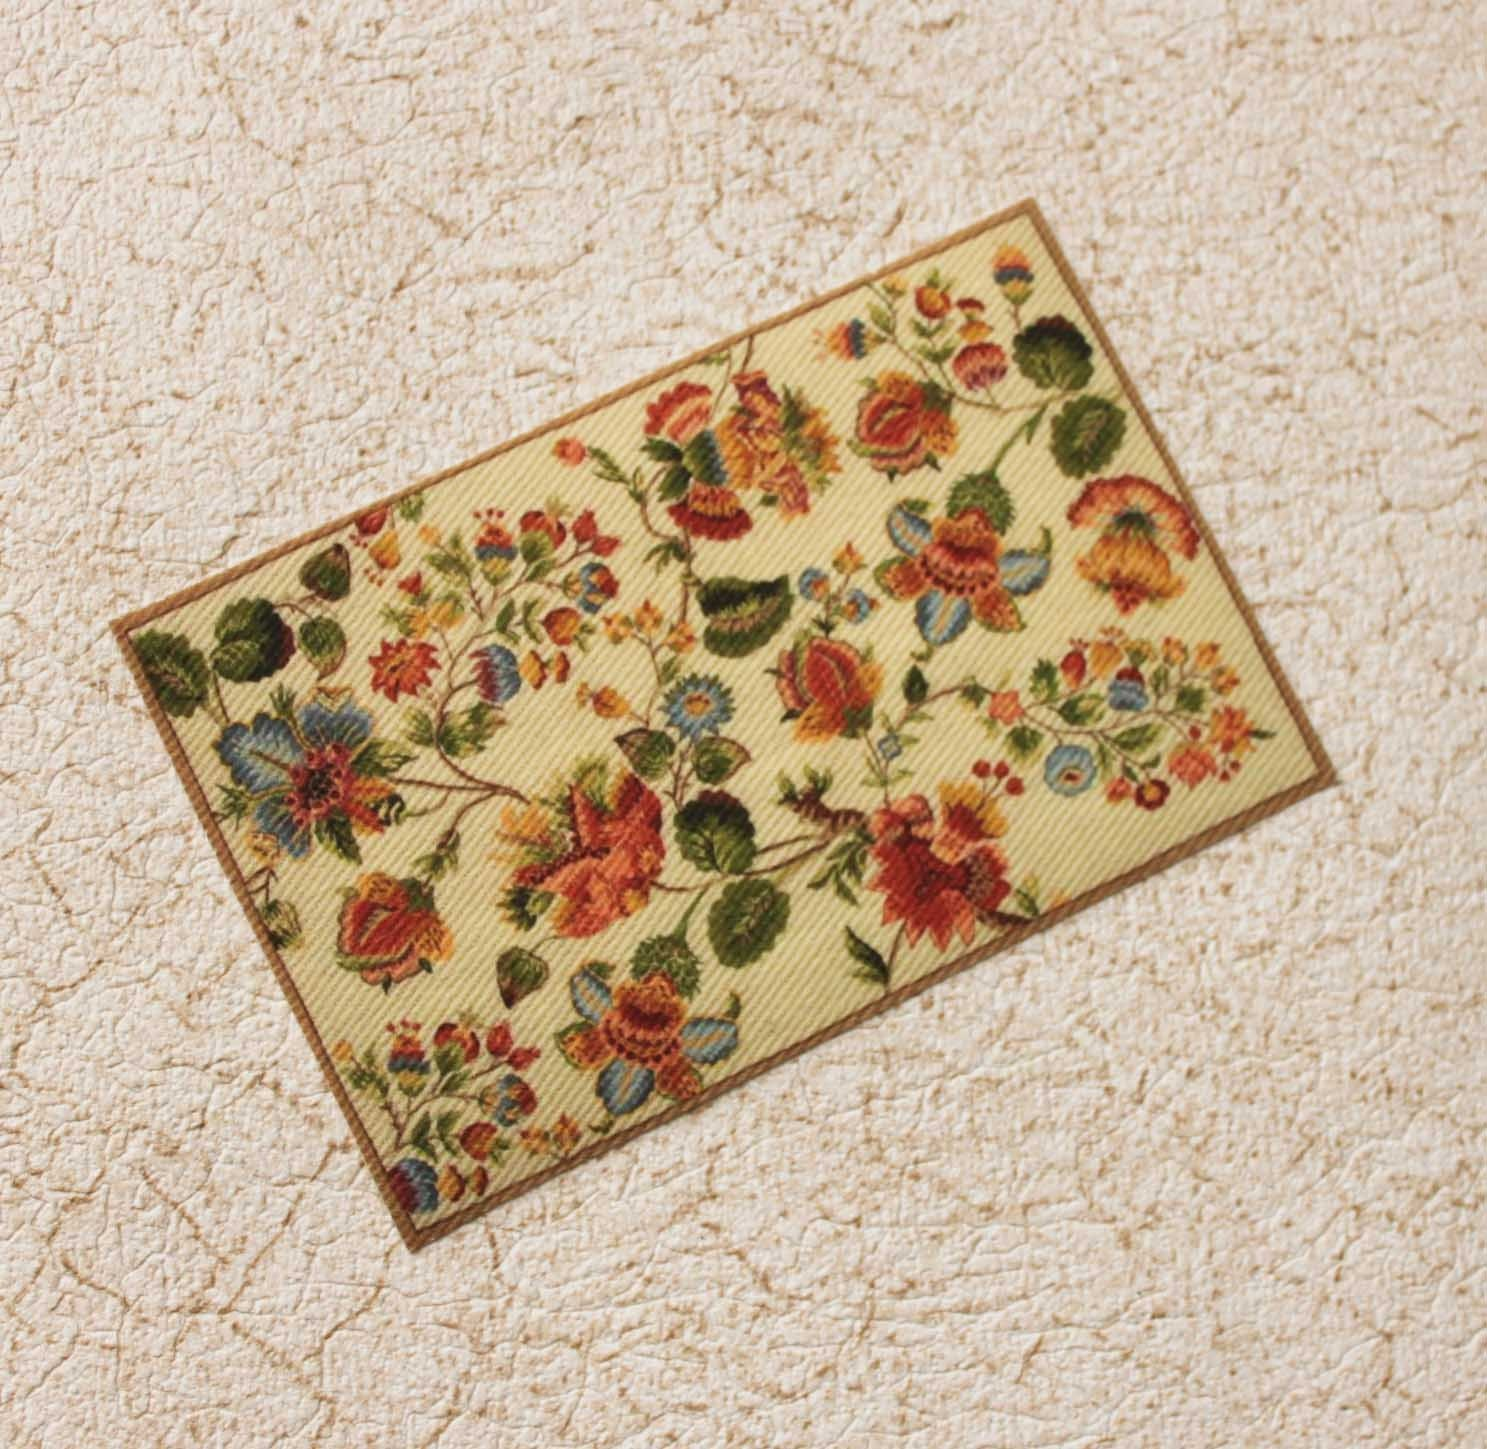 Dollhouse Miniature Rug Needlepoint Design In One Twelfth